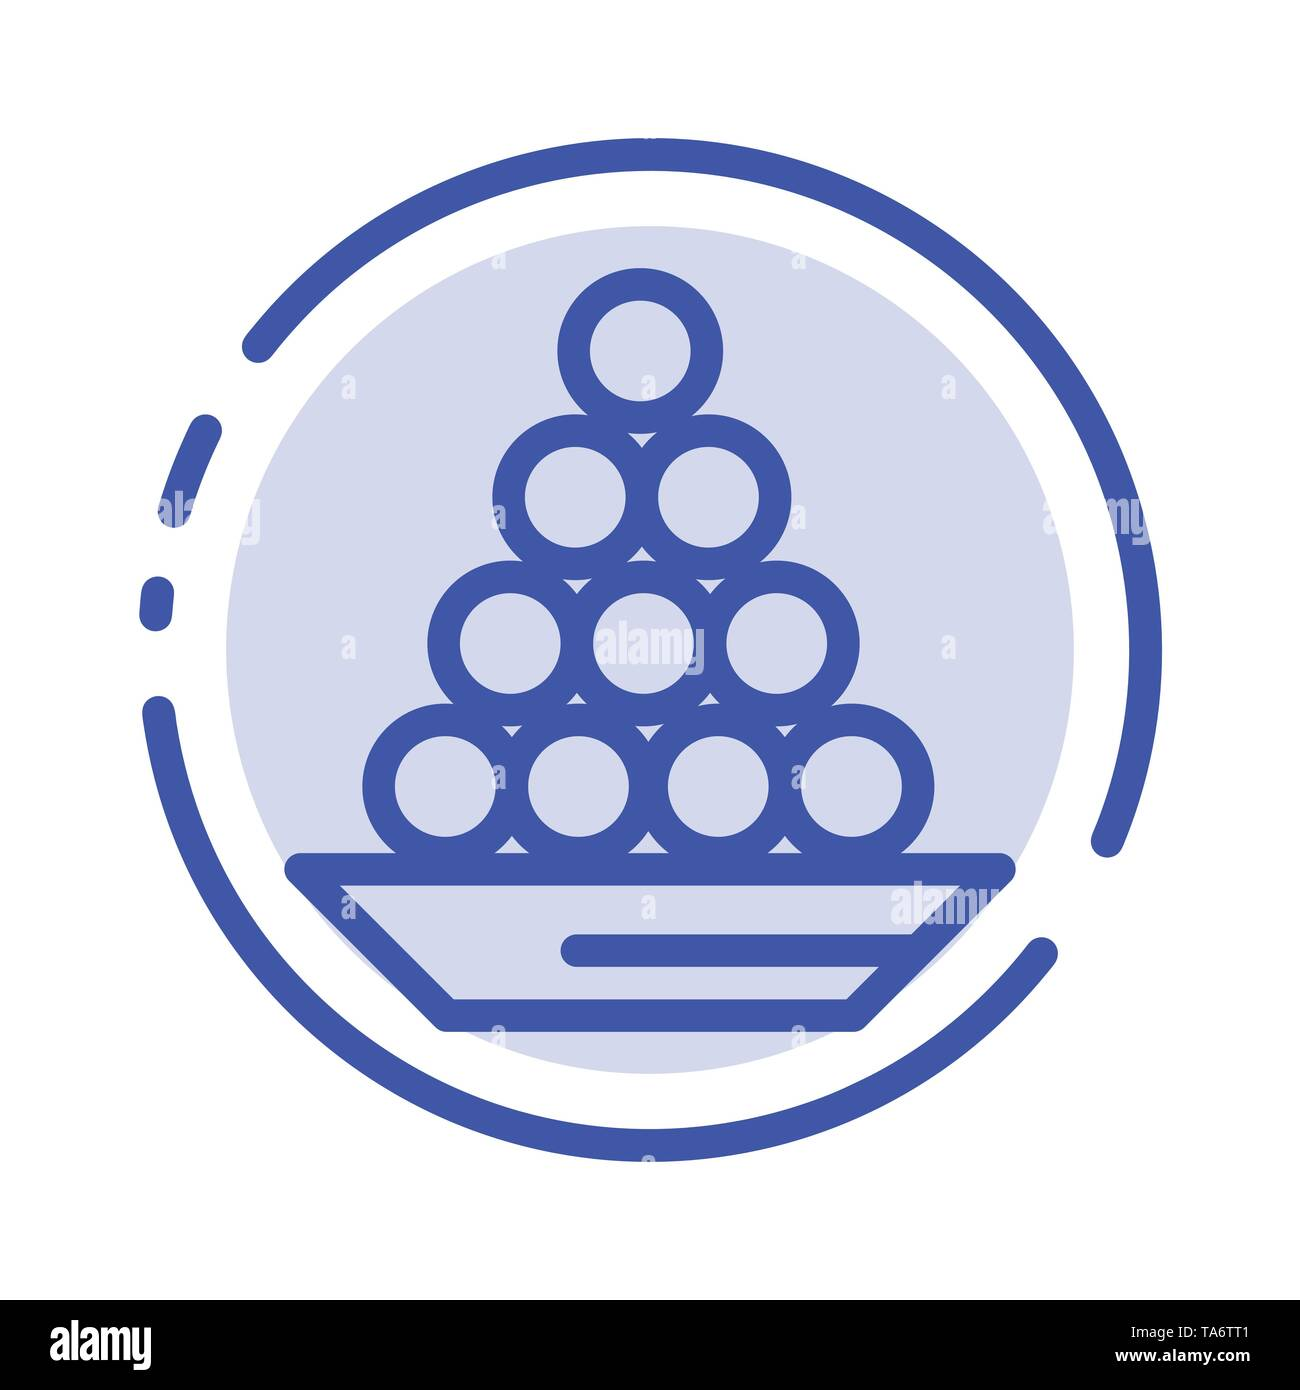 Bowl, Delicacy, Dessert, Indian, Laddu, Sweet, Treat Blue Dotted Line Line Icon - Stock Image